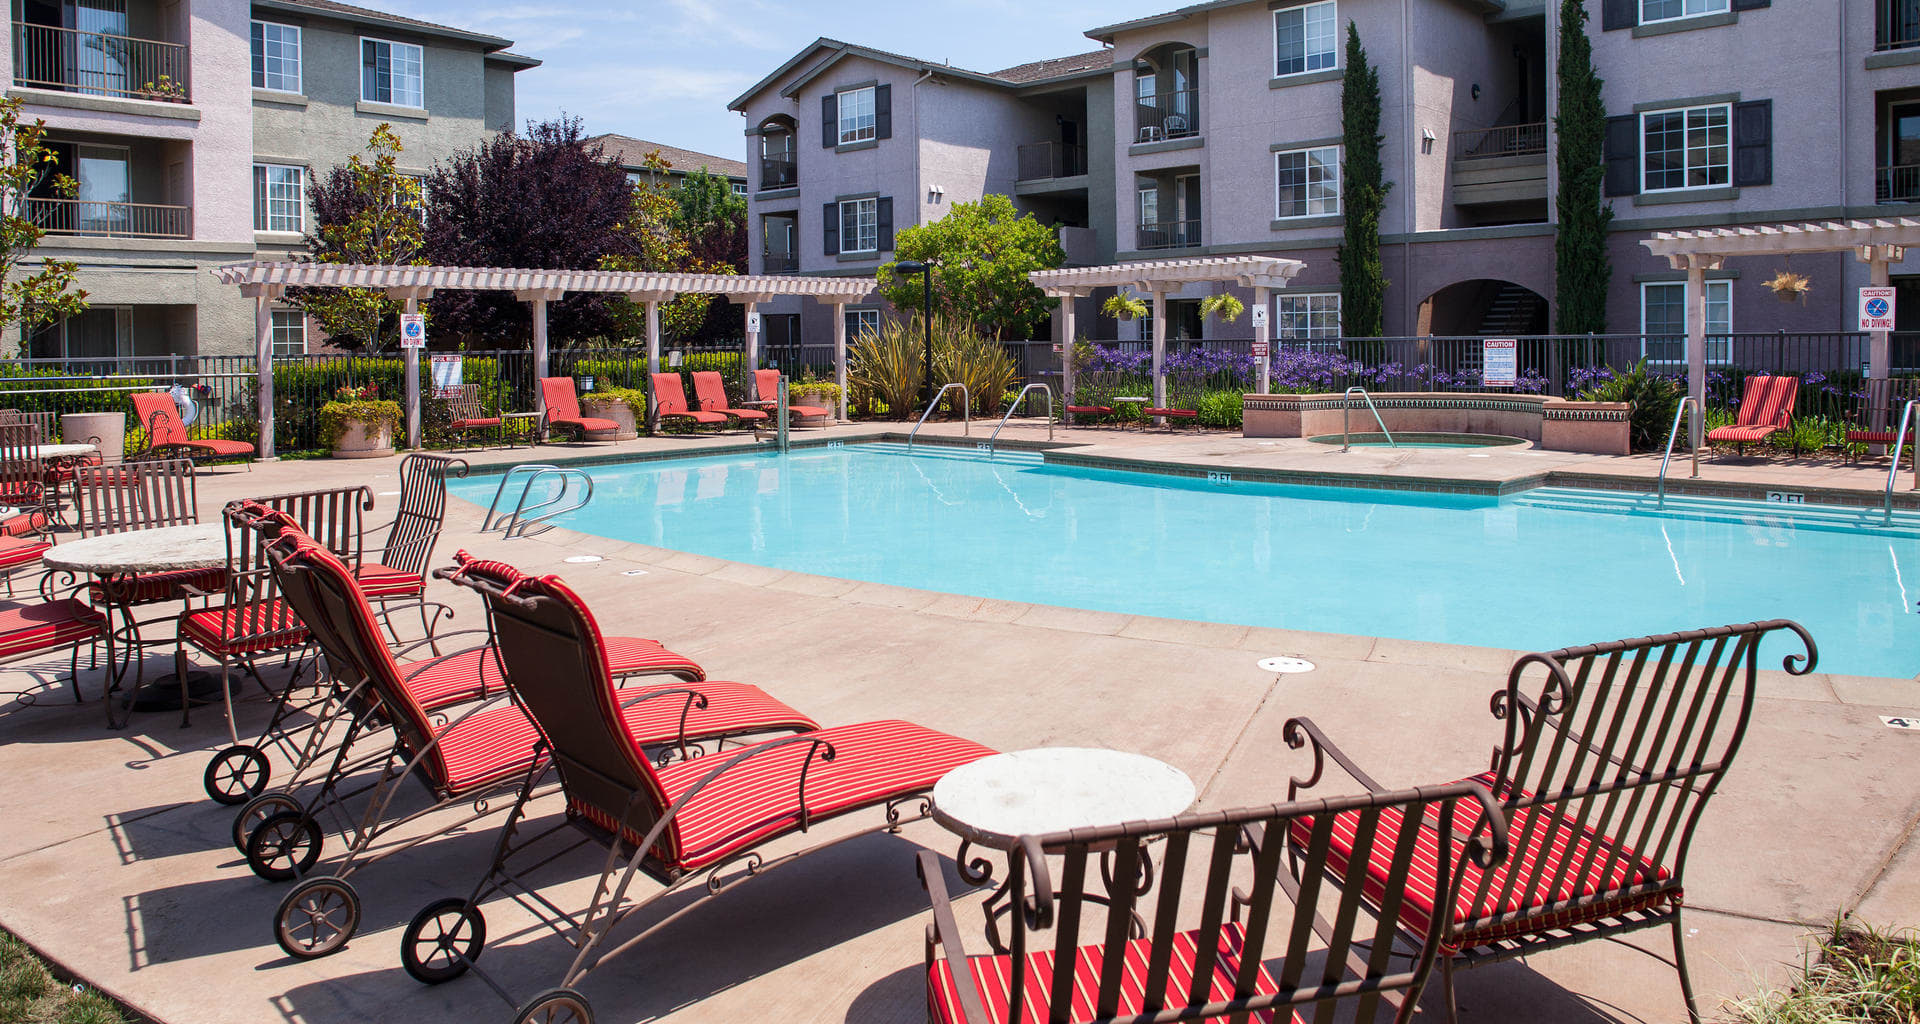 Pool side at Sterling Village Apartments, Vallejo, CA, 94590